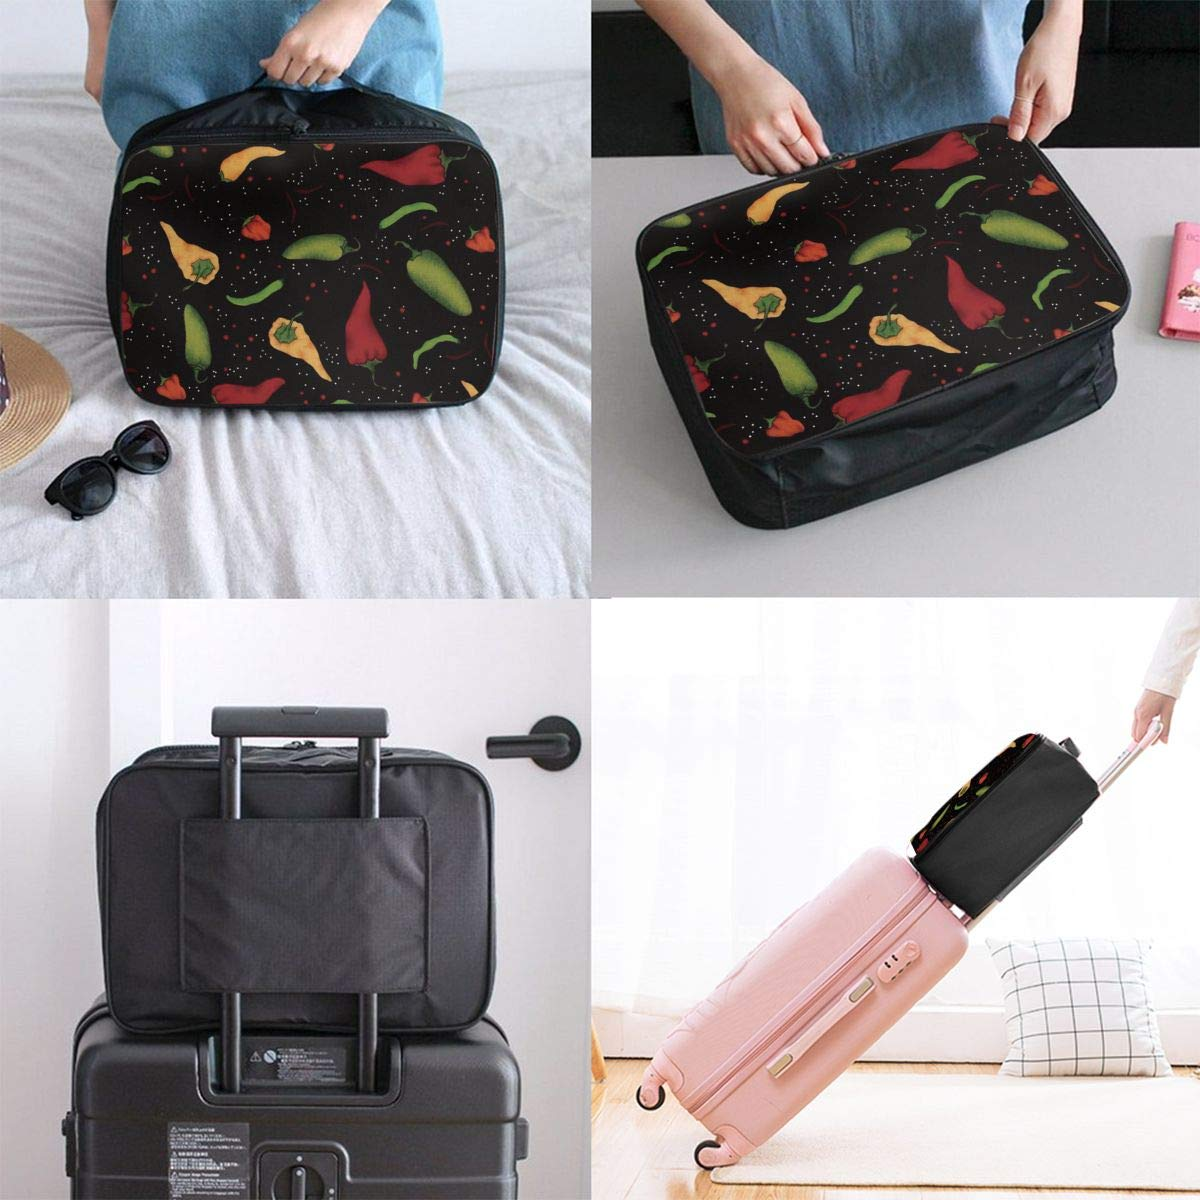 Camping Travel Duffle Bag Red Green Chili Pepper Weekend Bags Water Resistant Foldable Nylon Luggage Duffel Bag For Sports Holiday Gym Tote Bag In Trolley Handle